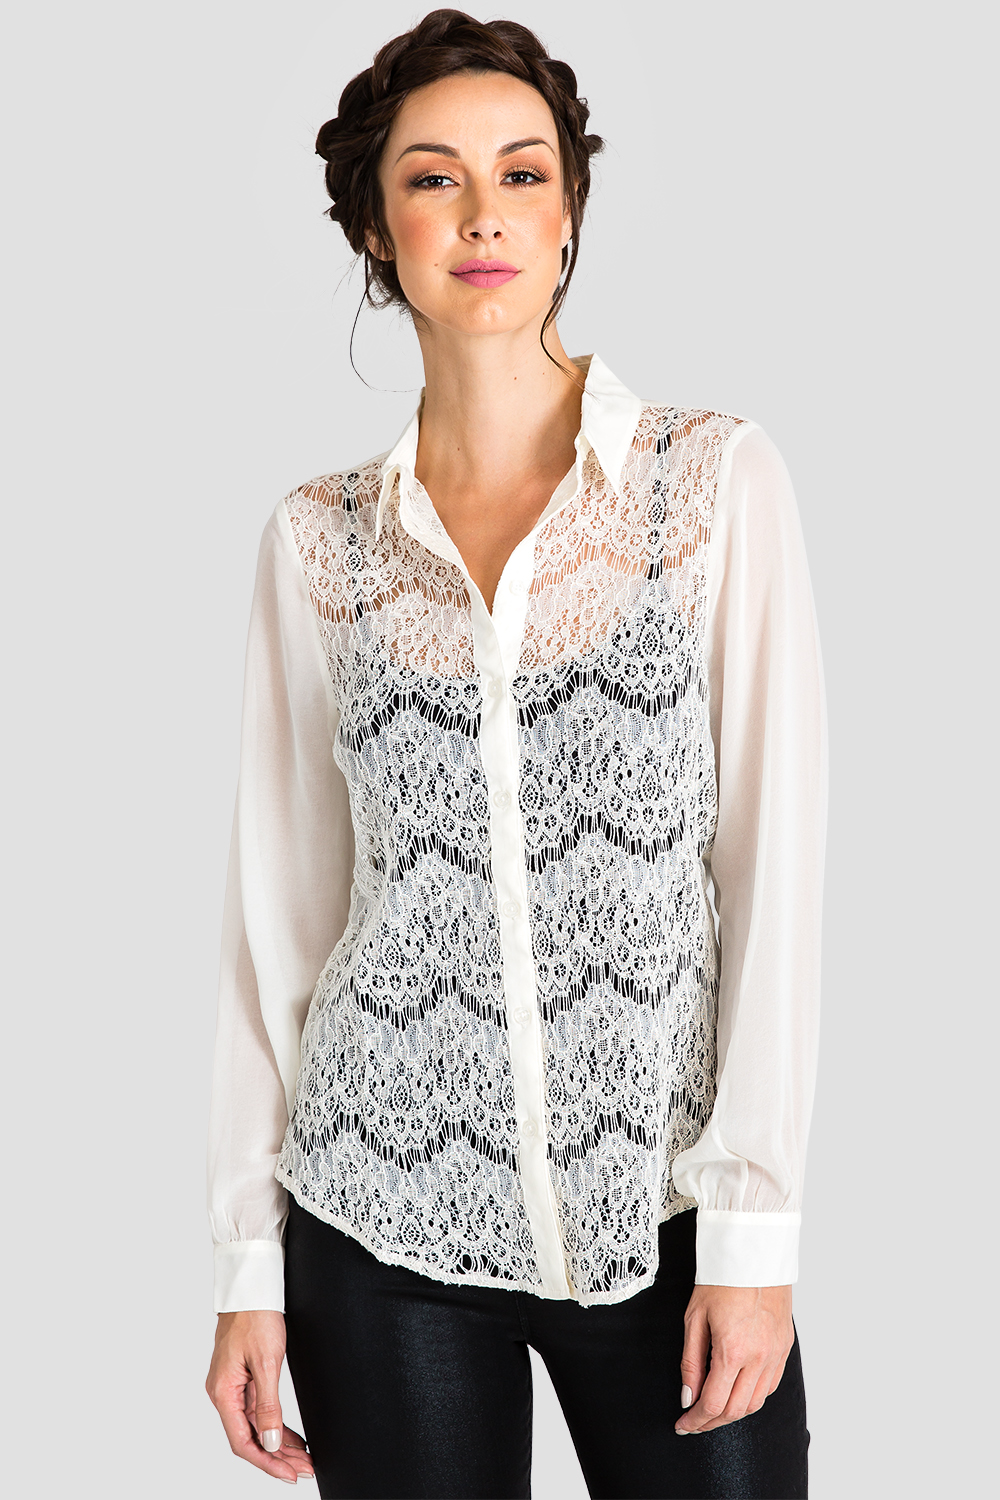 Ivory Lace Collared Top